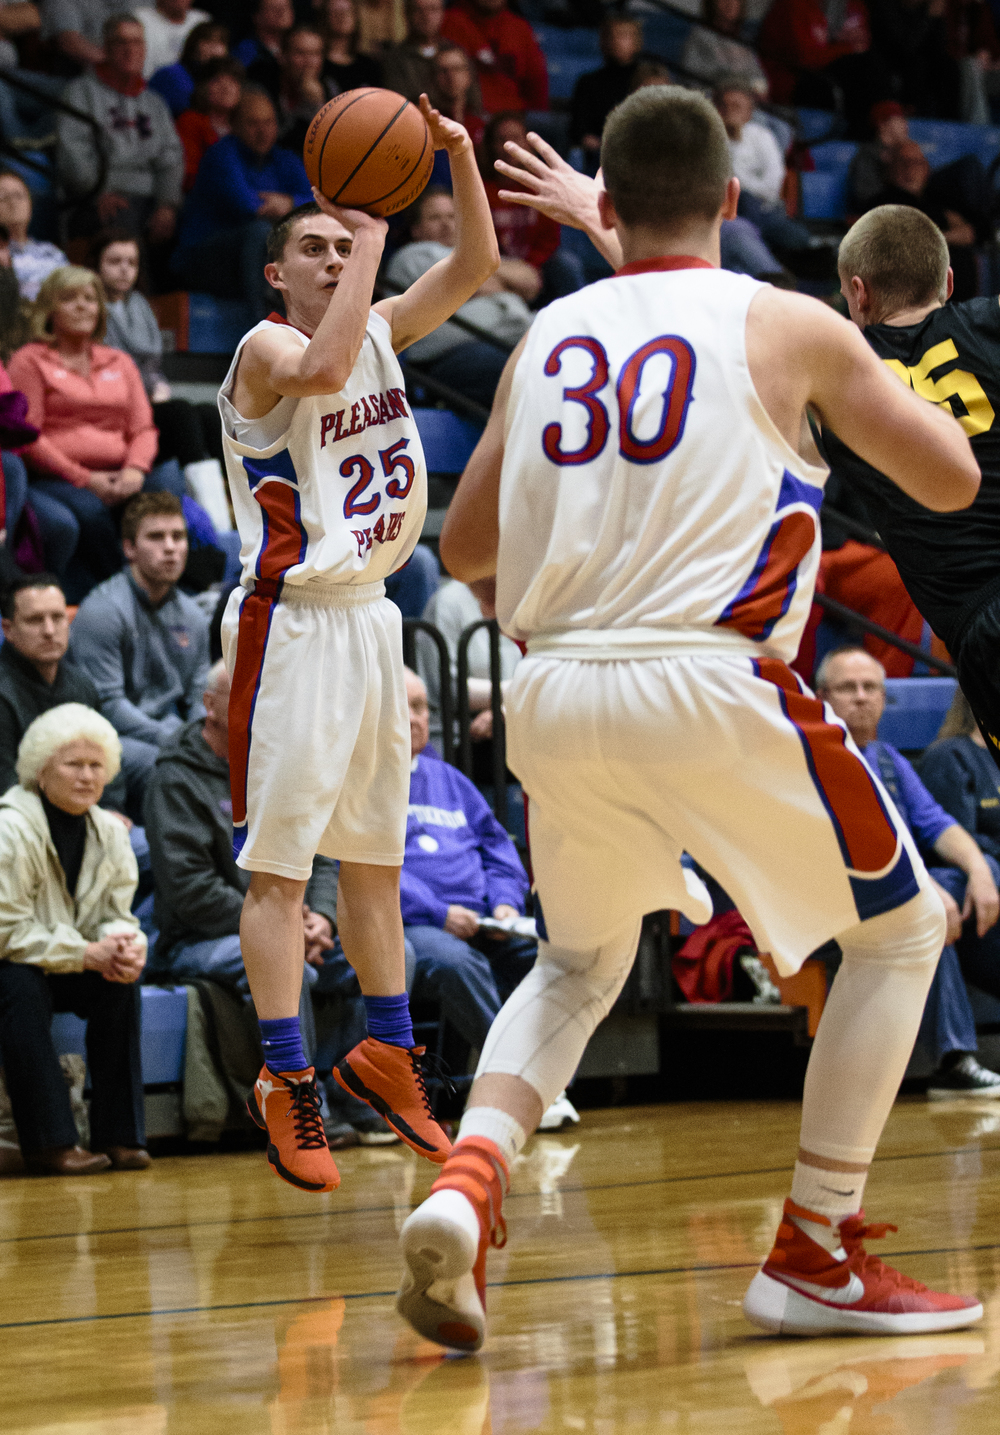 Pleasant Plains' Isaac Collins (25) fires a three against Reed-Custer in the second quarter during the Riverton Subway Shootout at Riverton High School, Saturday, Feb. 13, 2016, in Riverton, Ill. Justin L. Fowler/The State Journal-Register